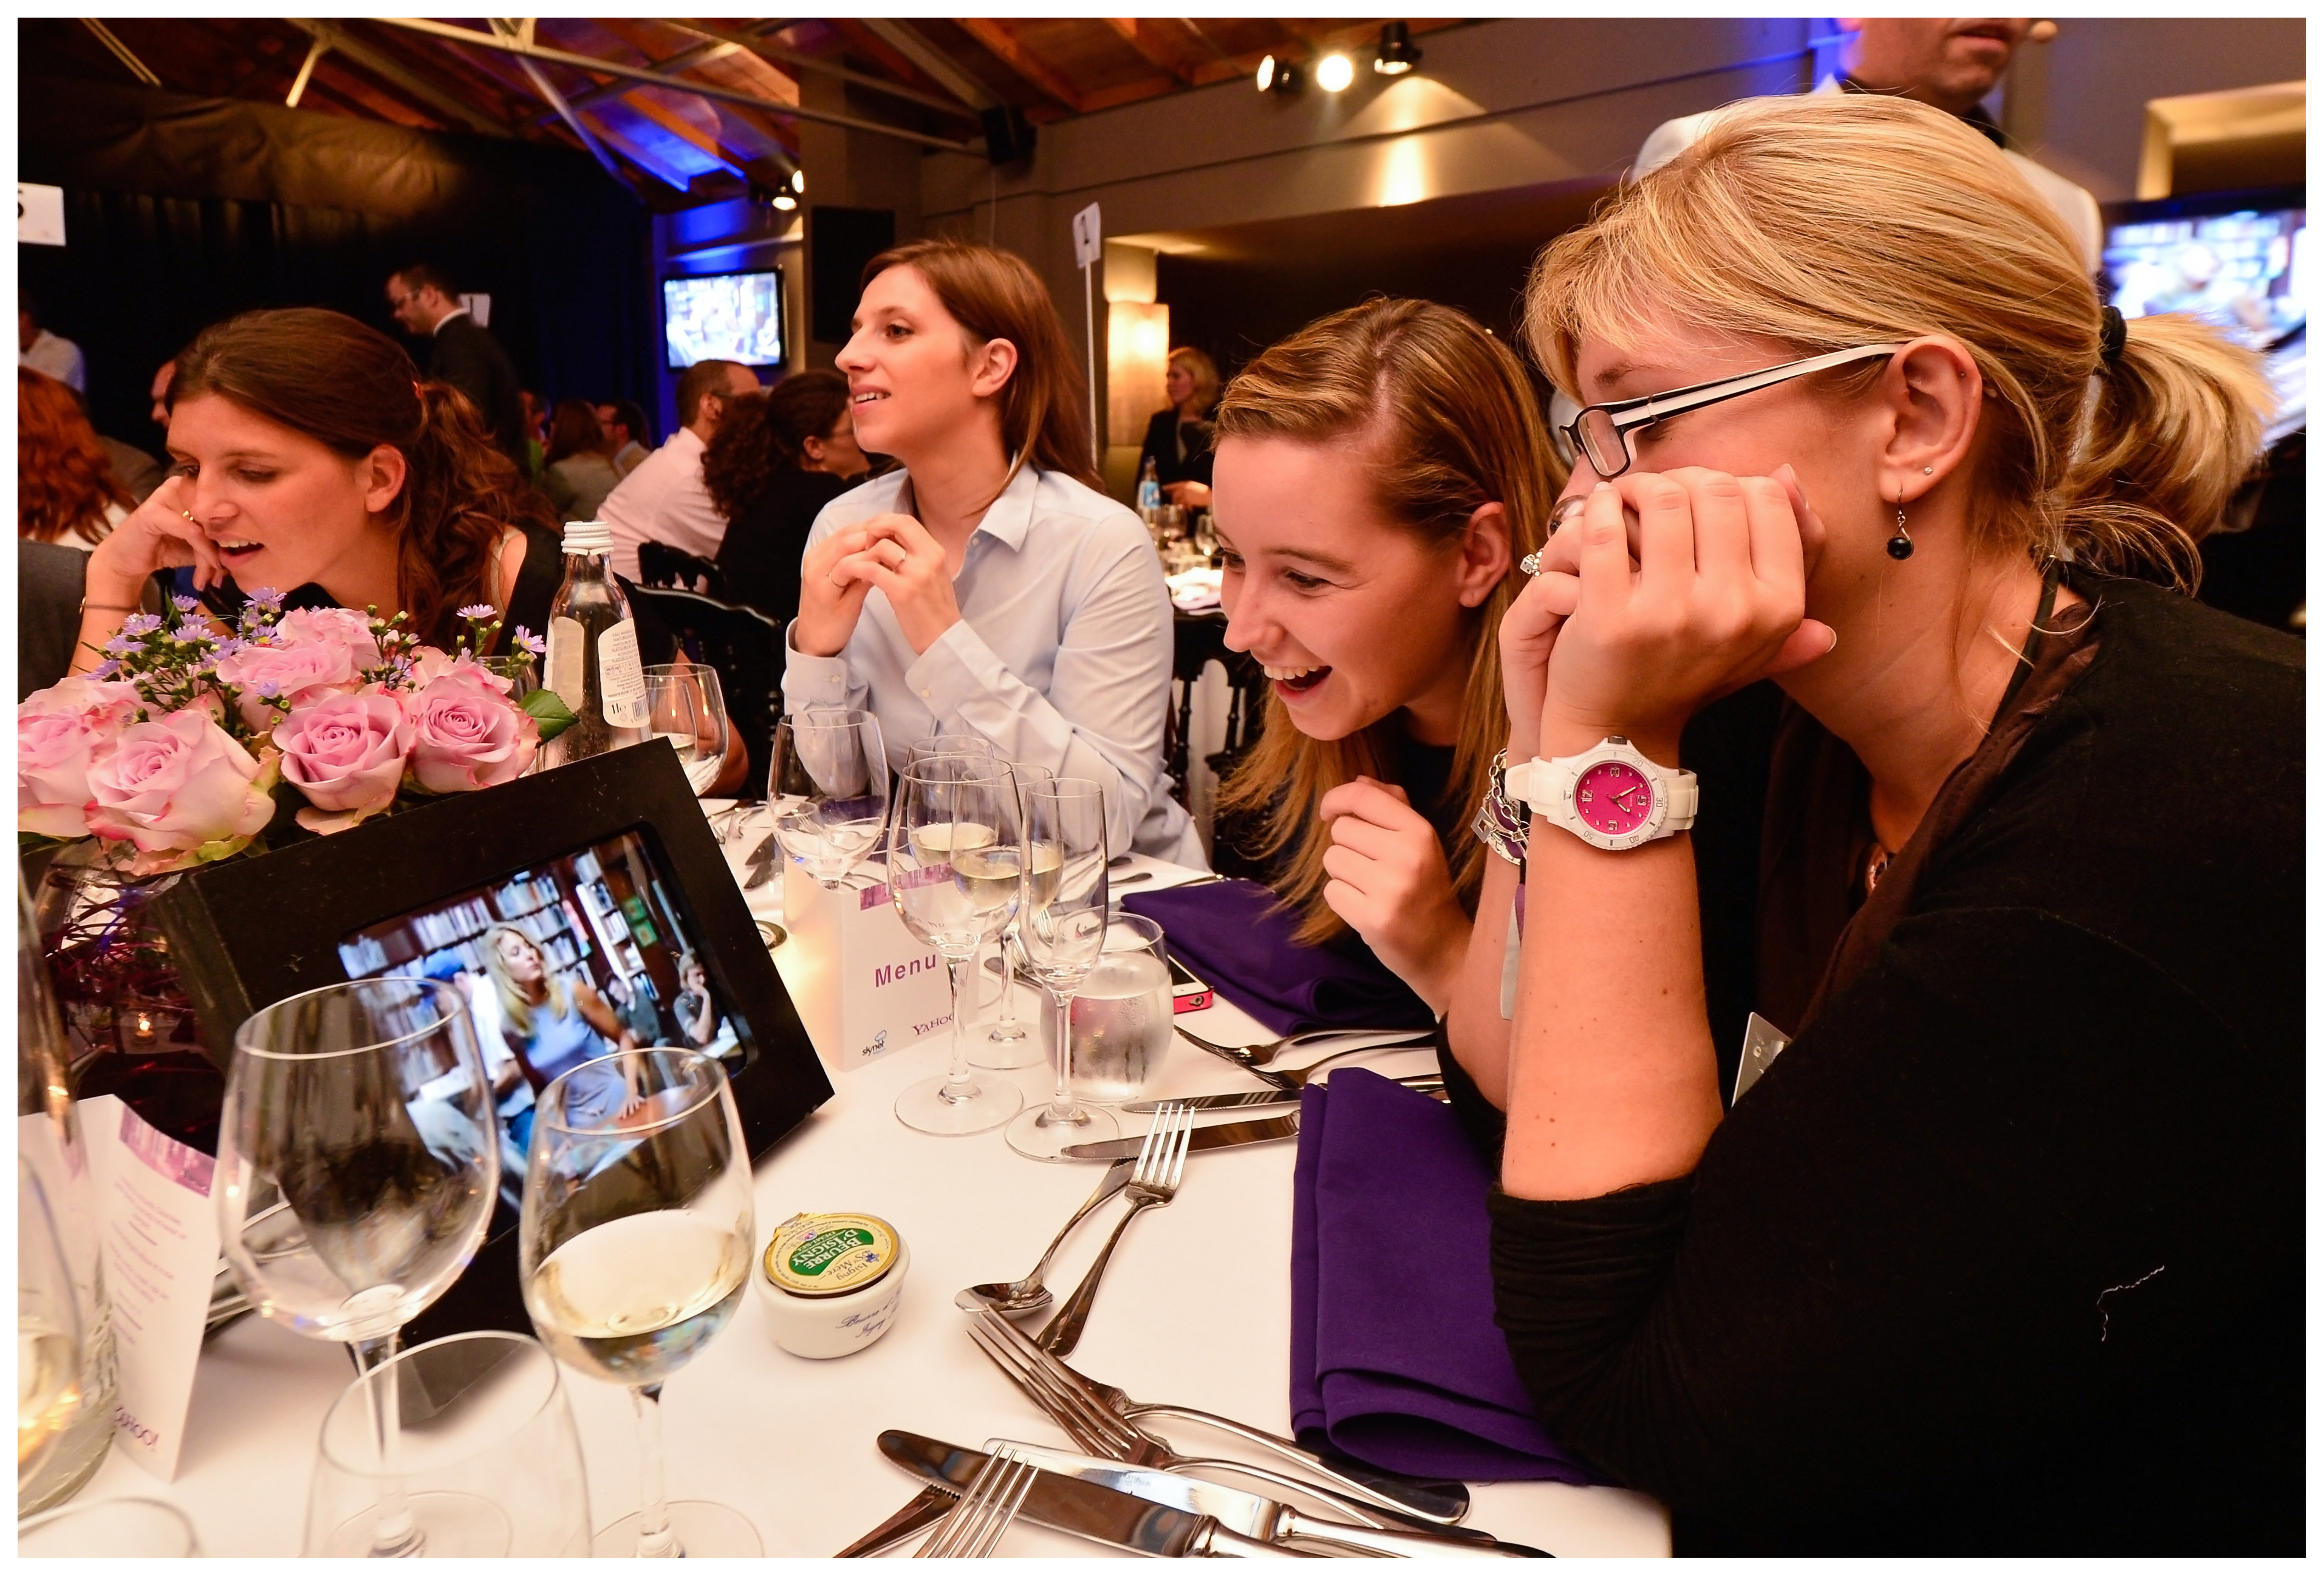 Delegates laugh as they watch what's on their iPads